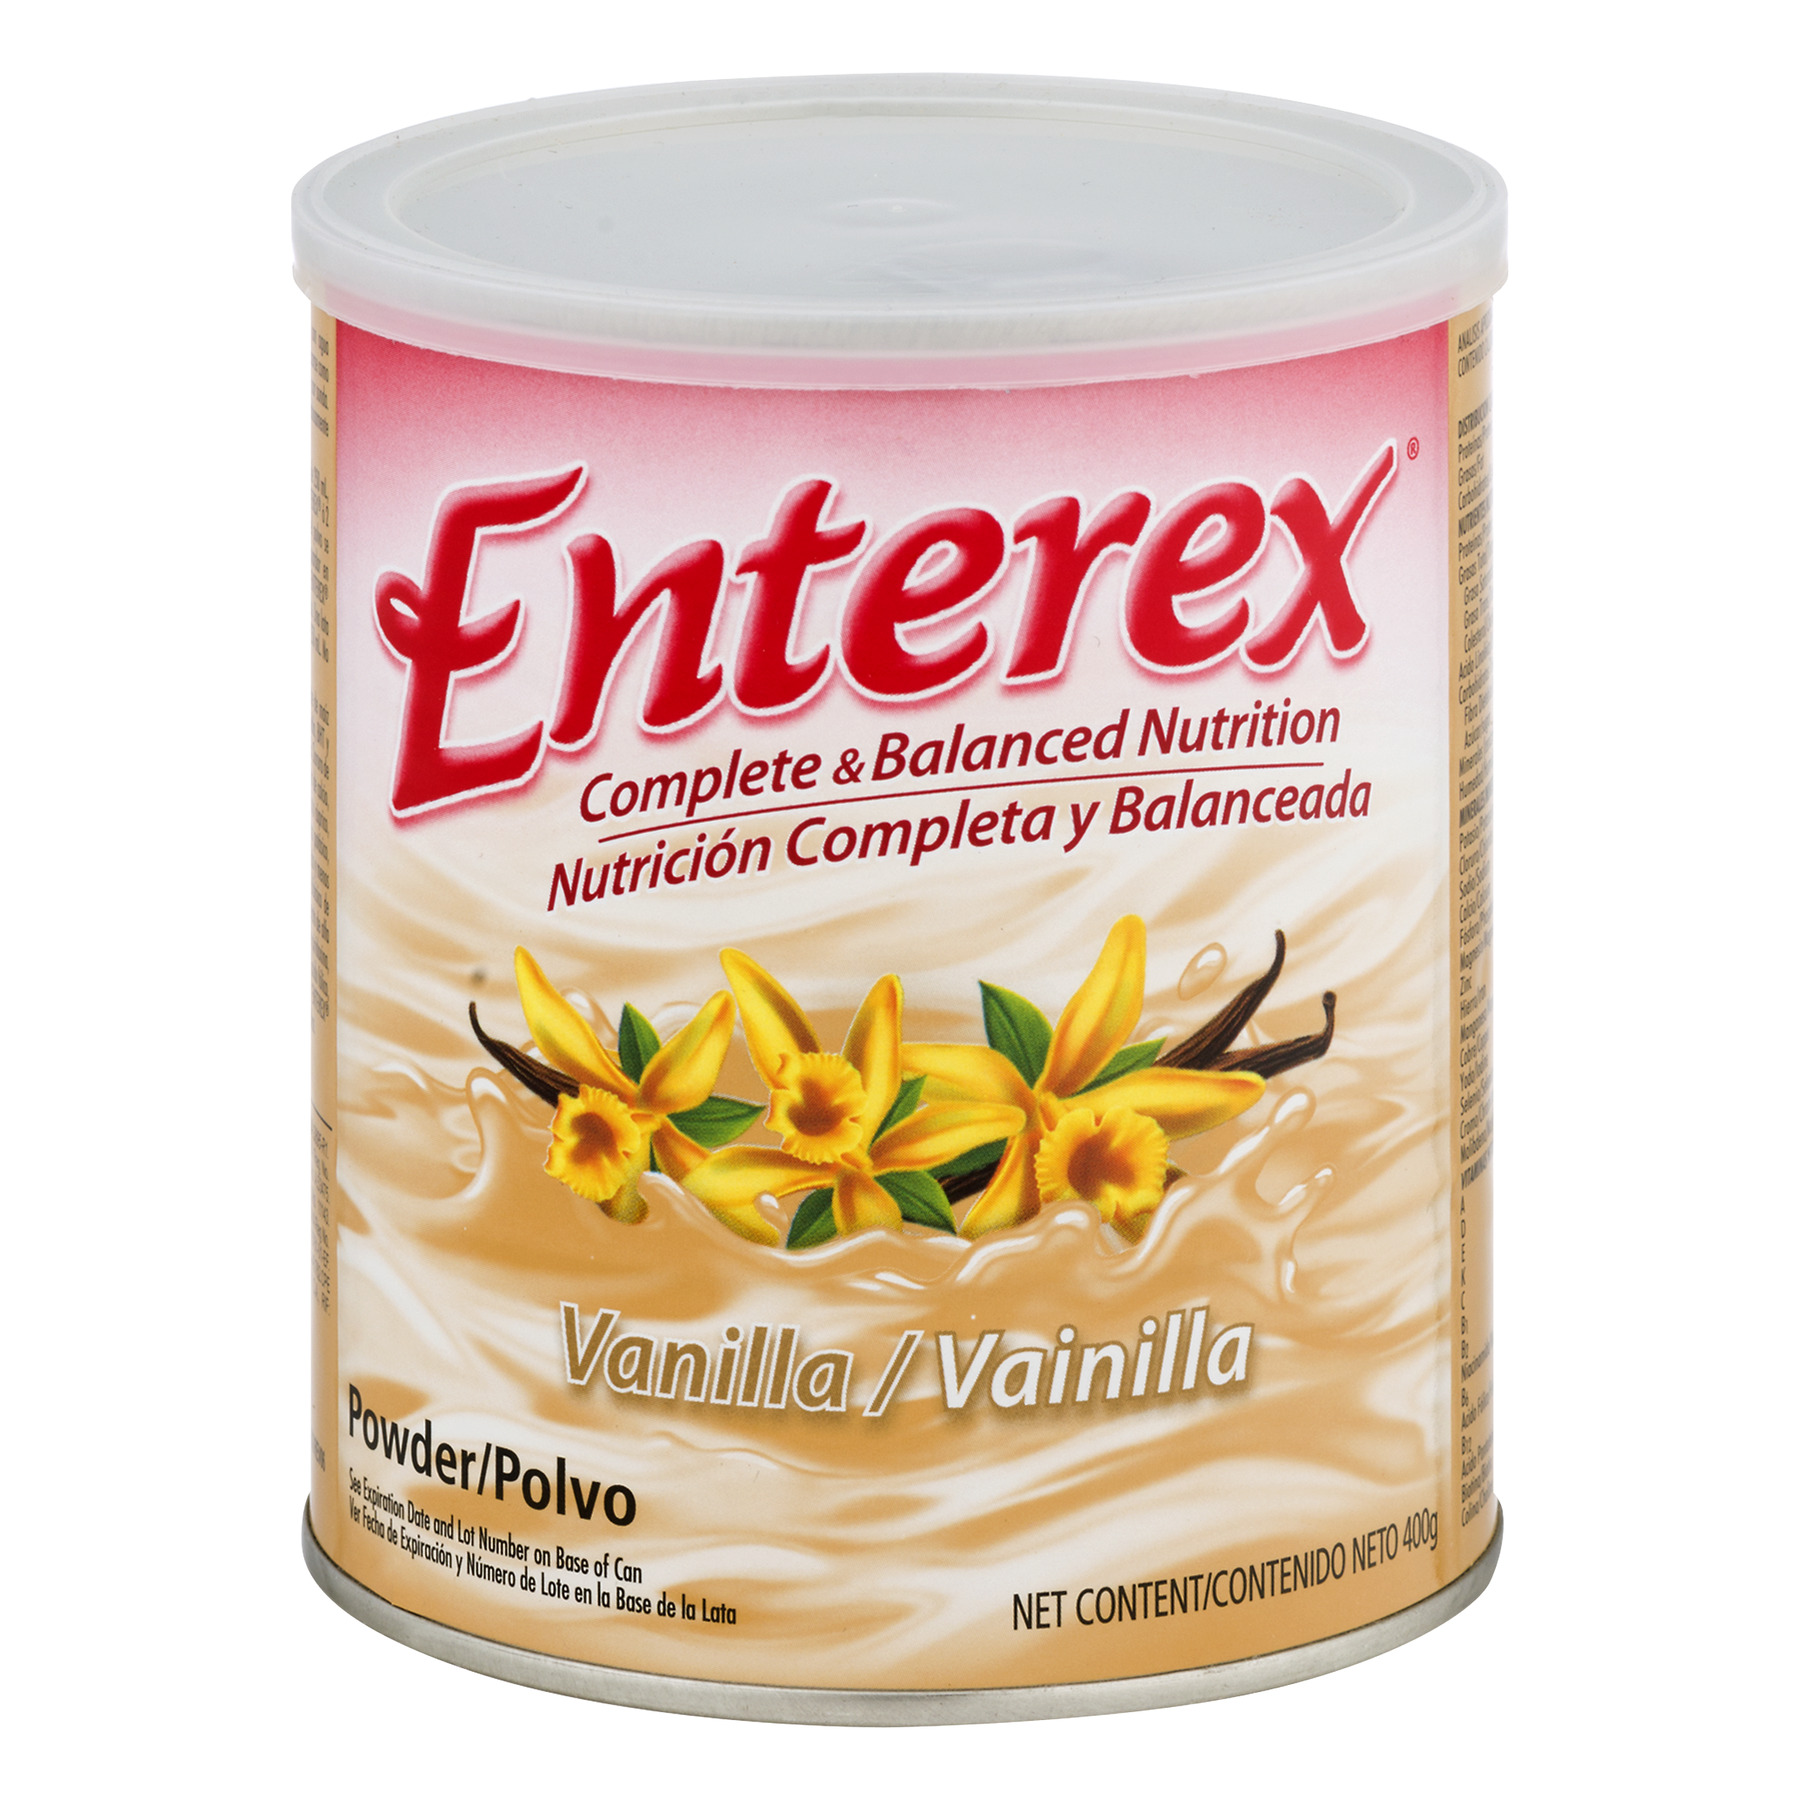 Enterex Complete & Balanced Nutrition Vanilla Powder Drink, 400 g